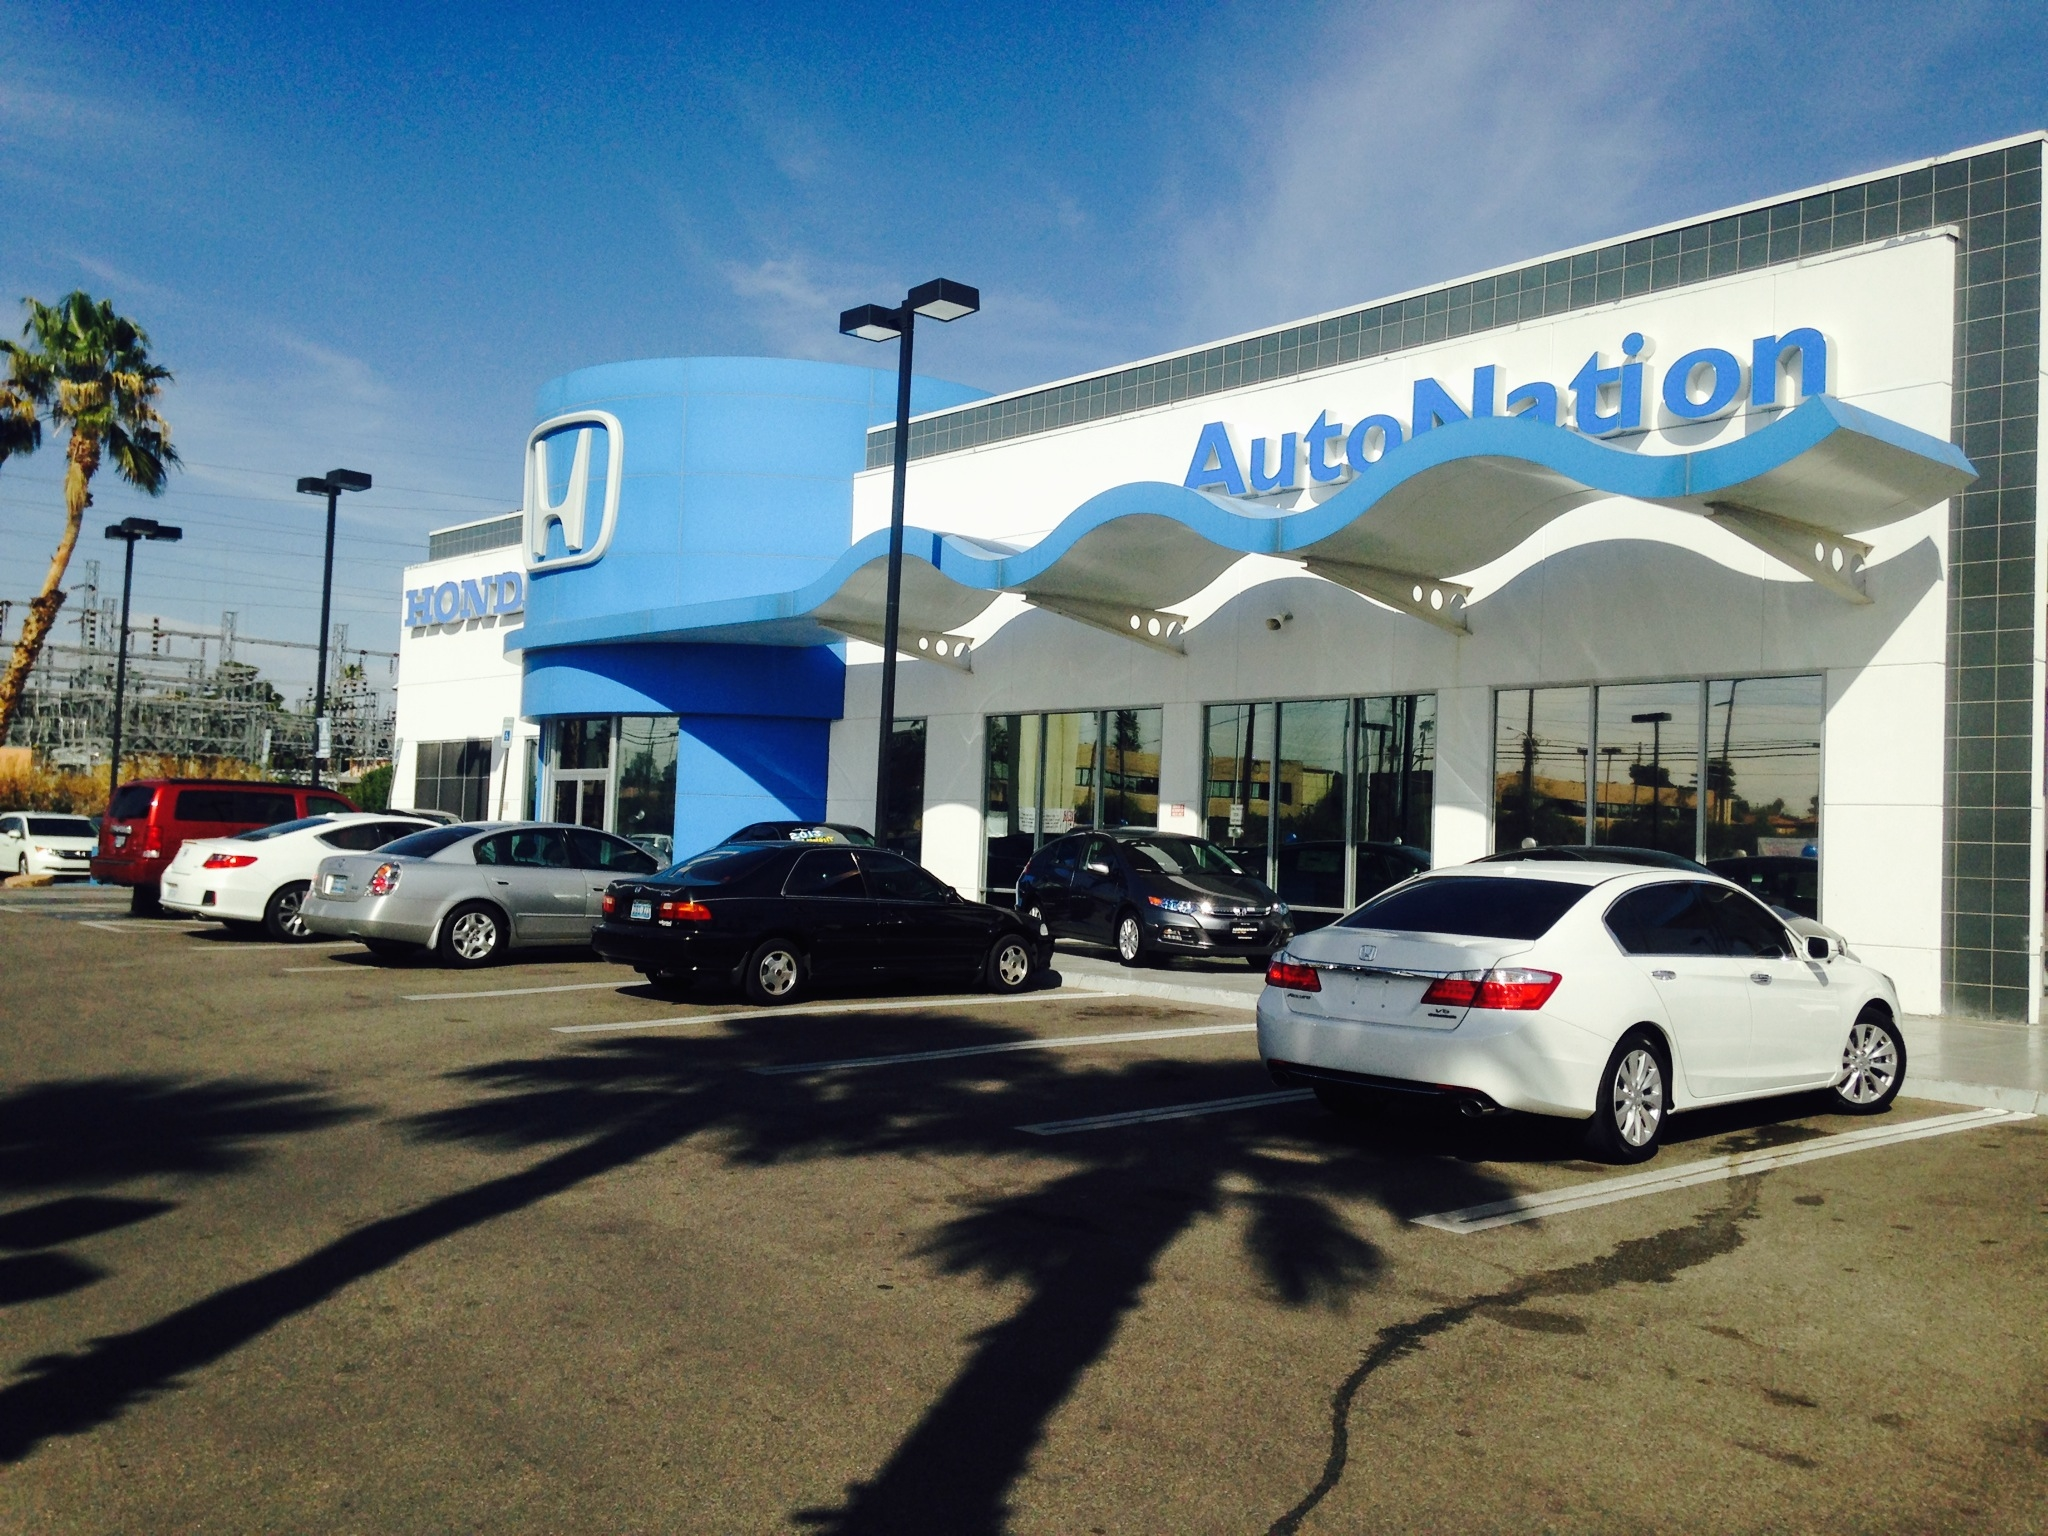 autonation honda east las vegas in las vegas nv whitepages